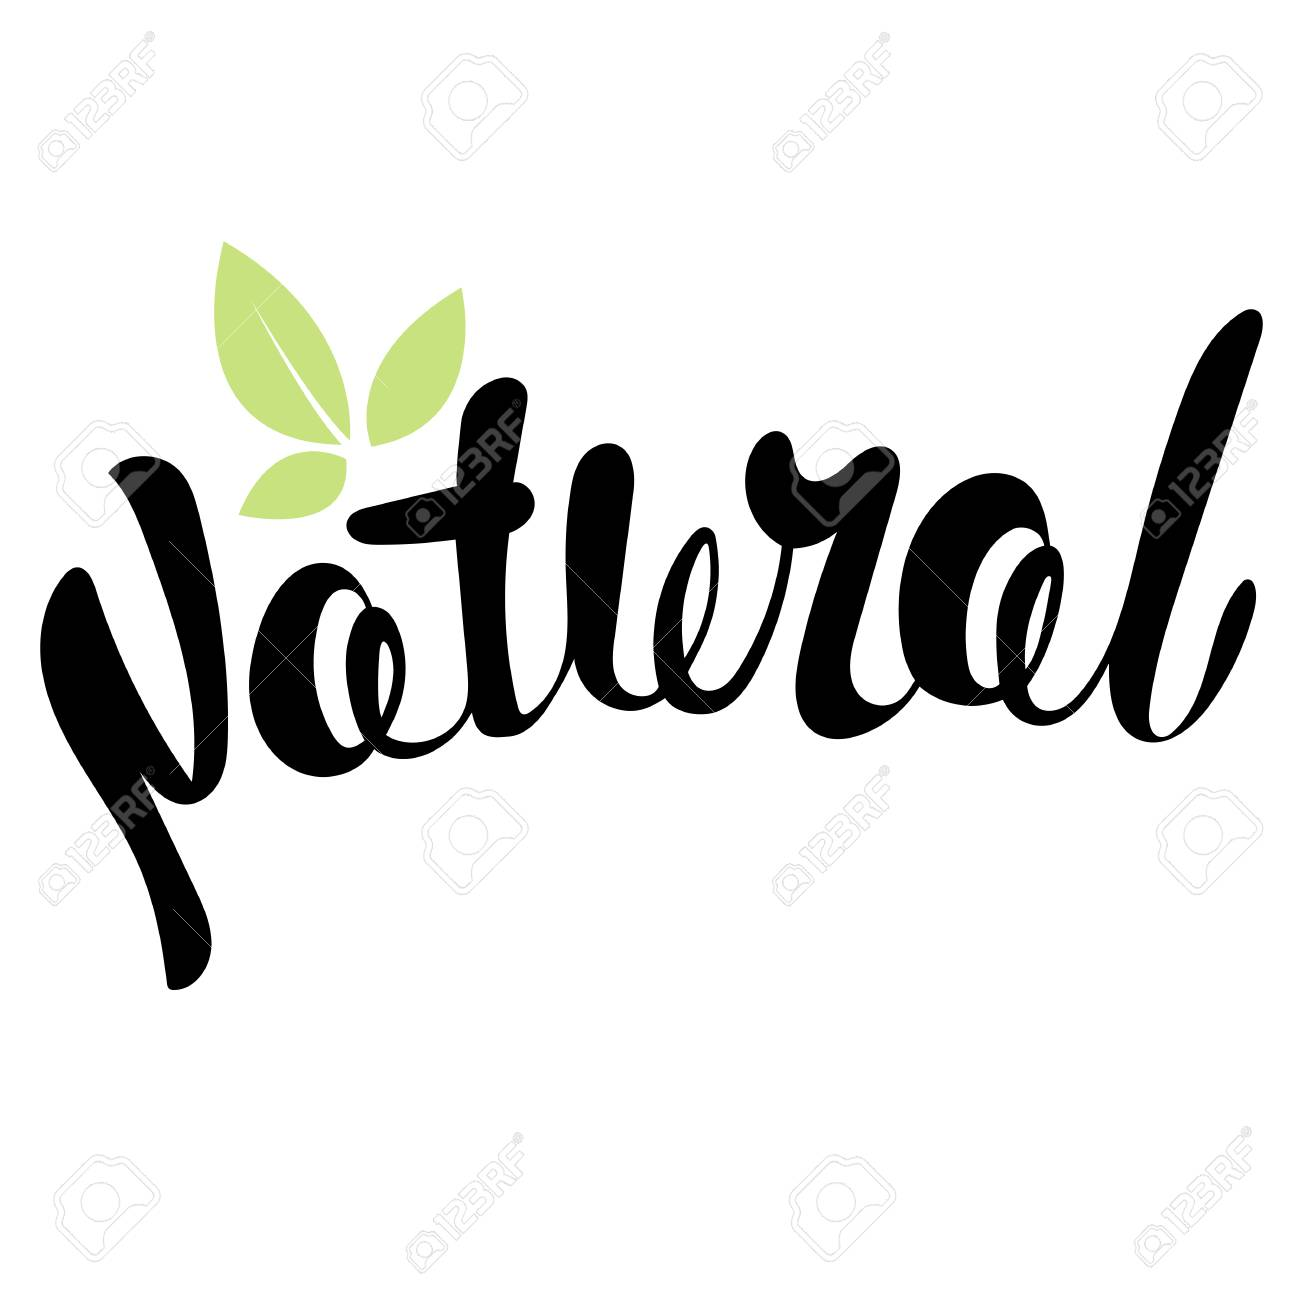 Logo Natural with leaves, natural product, organic, healthy food